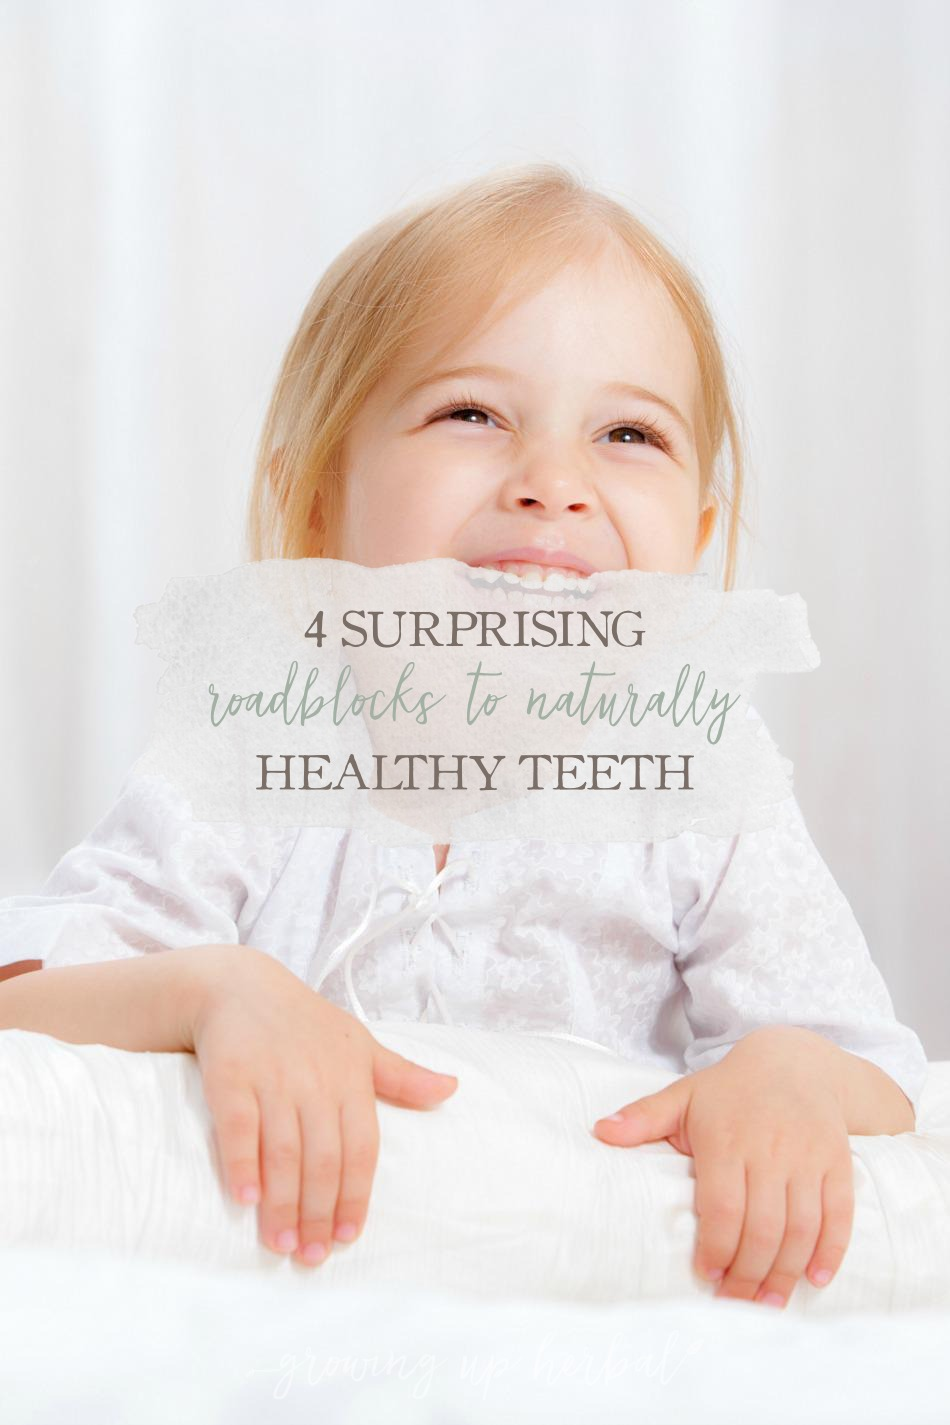 4 Surprising Roadblocks To Naturally Healthy Teeth | Growing Up Herbal | Want to keep your kids teeth healthy naturally? Here are 4 things to keep in mind first!